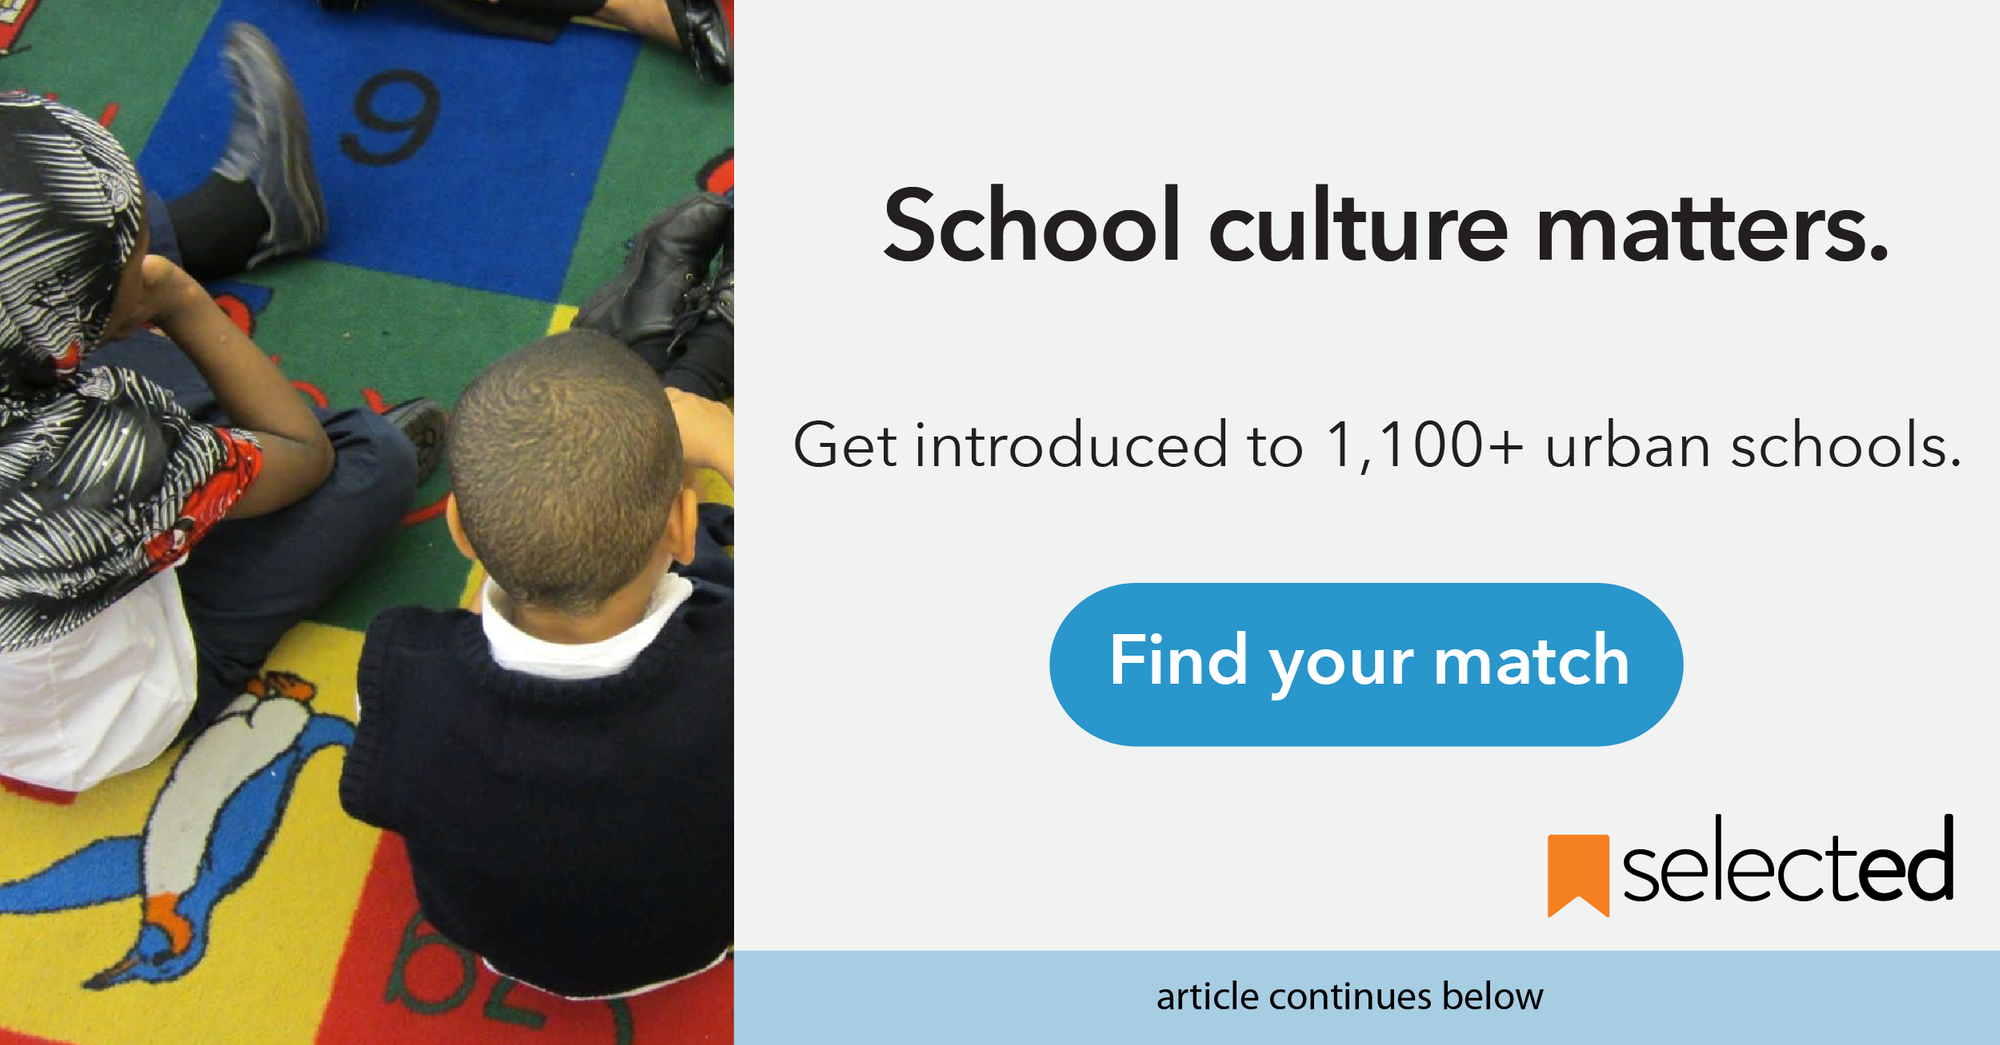 ghost-teacher-culture-ad-article-continues-blue-3